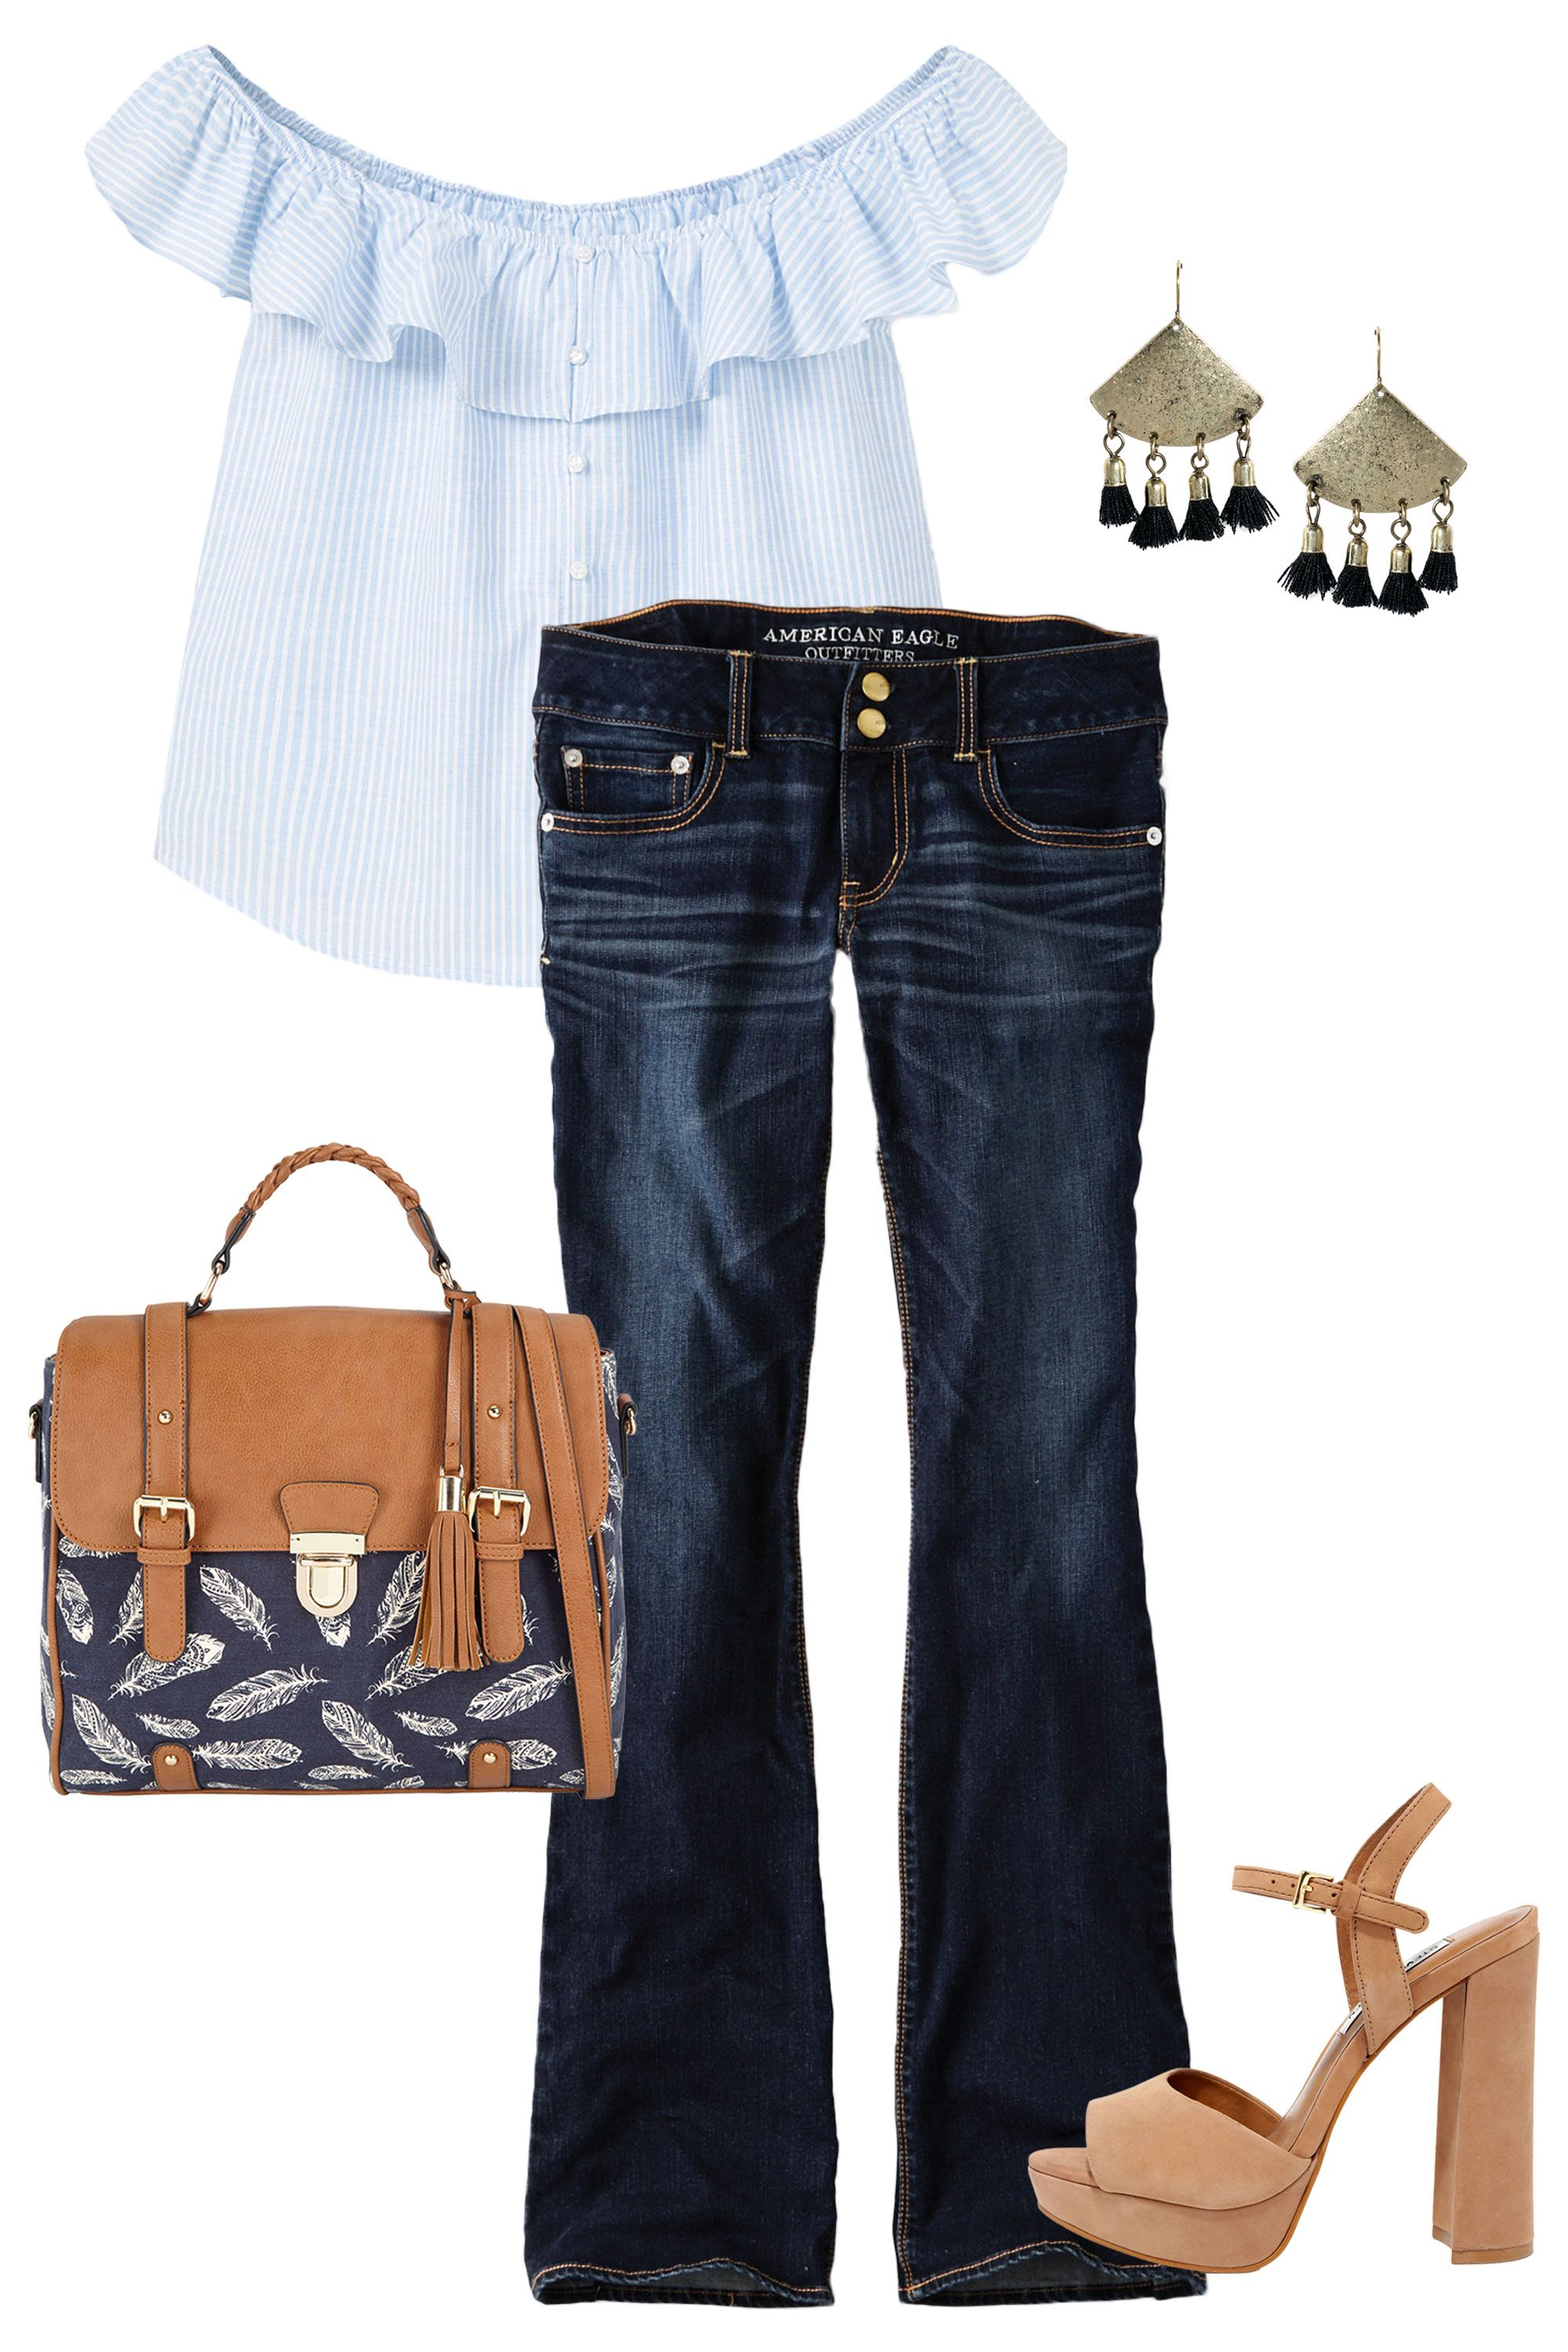 "<p>Uhh, wrong! After the years-long reign of the skinny jean, flared jeans are back in a <i>major </i>way. Pair a lightly faded pair with an off-the-shoulder top and neutral platforms for a look that's both trendy and flirty.<br></p><p><em><br></em></p><p><em>AEO Denim X4 Artist Flare Jean $49.95, <a href=""https://www.ae.com/women-aeo-denim-x4-artist-flare-jean-faded-ways/web/s-prod/1435_9584_537?cm=sUS-cUSD"" target=""_blank"">ae.com</a>&#x3B; Off-Shoulder T-Shirt, $50, <a href=""http://shop.mango.com/US/p0/women/clothing/shirts/blouses/off-shoulder-t-shirt/?id=73093022_50&n=1&s=destacados_she.off_shoulders_she"" target=""_blank"">mango.com</a>&#x3B; <em>Take a Bow Black and Gold Tassel Earrings, $12, </em><a href=""https://www.lulus.com/products/take-a-bow-black-and-gold-tassel-earrings/355082.html"" target=""_blank""><em>lulus.com</em></a>&#x3B; Daonna handbag, $45, <a href=""http://www.callitspring.com/us/en_US/handbags/c/300/DAONNA/p/47761712-2"" target=""_blank"">callitspring.com</a>&#x3B; Steve Madden Kierra Camel Nubuck Leather Platforms, $99, <a href=""https://www.lulus.com/products/steve-madden-kierra-camel-nubuck-leather-platform-heels/345322.html"" target=""_blank"">lulus.com</a></em></p>"